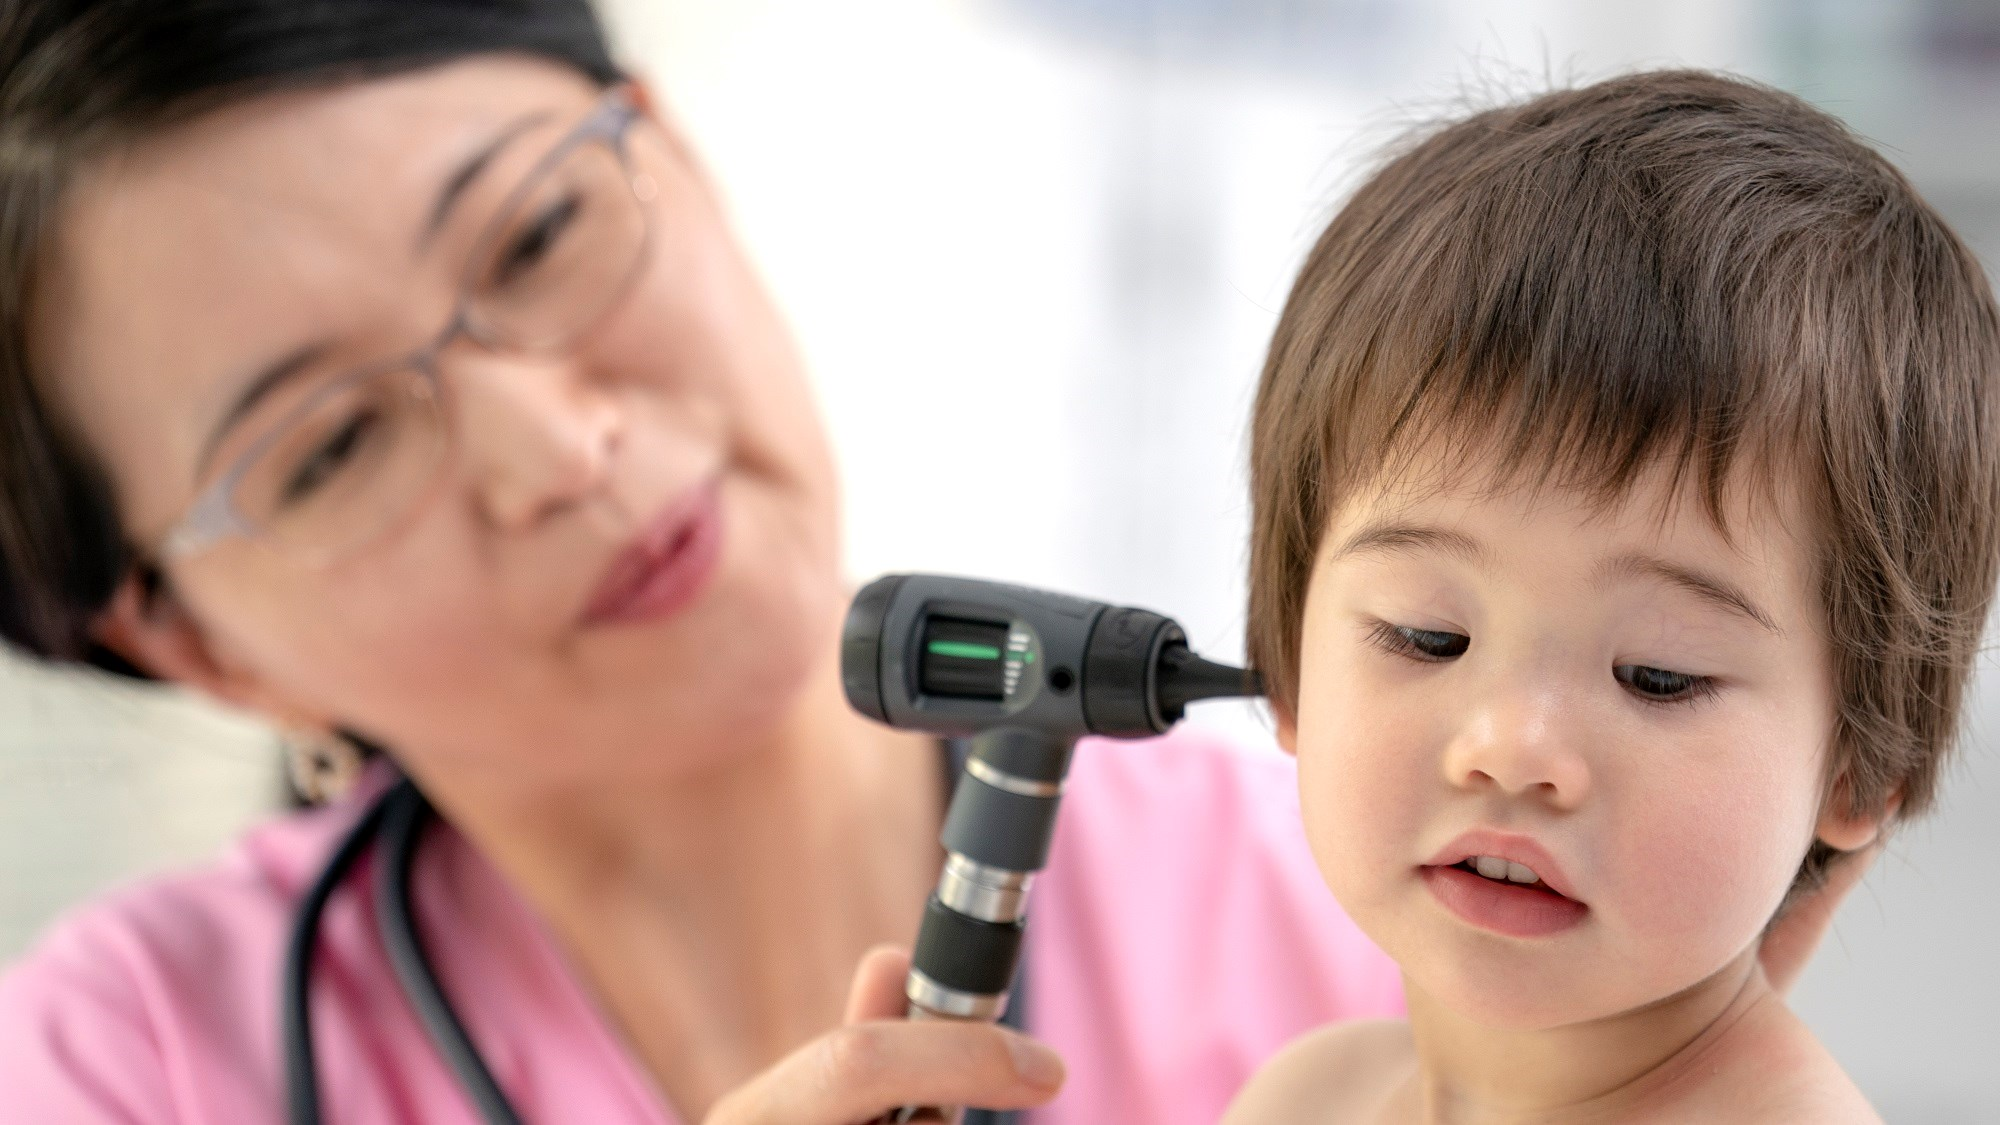 The use of short-term oral steroids may not significantly improve quality-of-life outcomes for children with persistent otitis media with effusion.